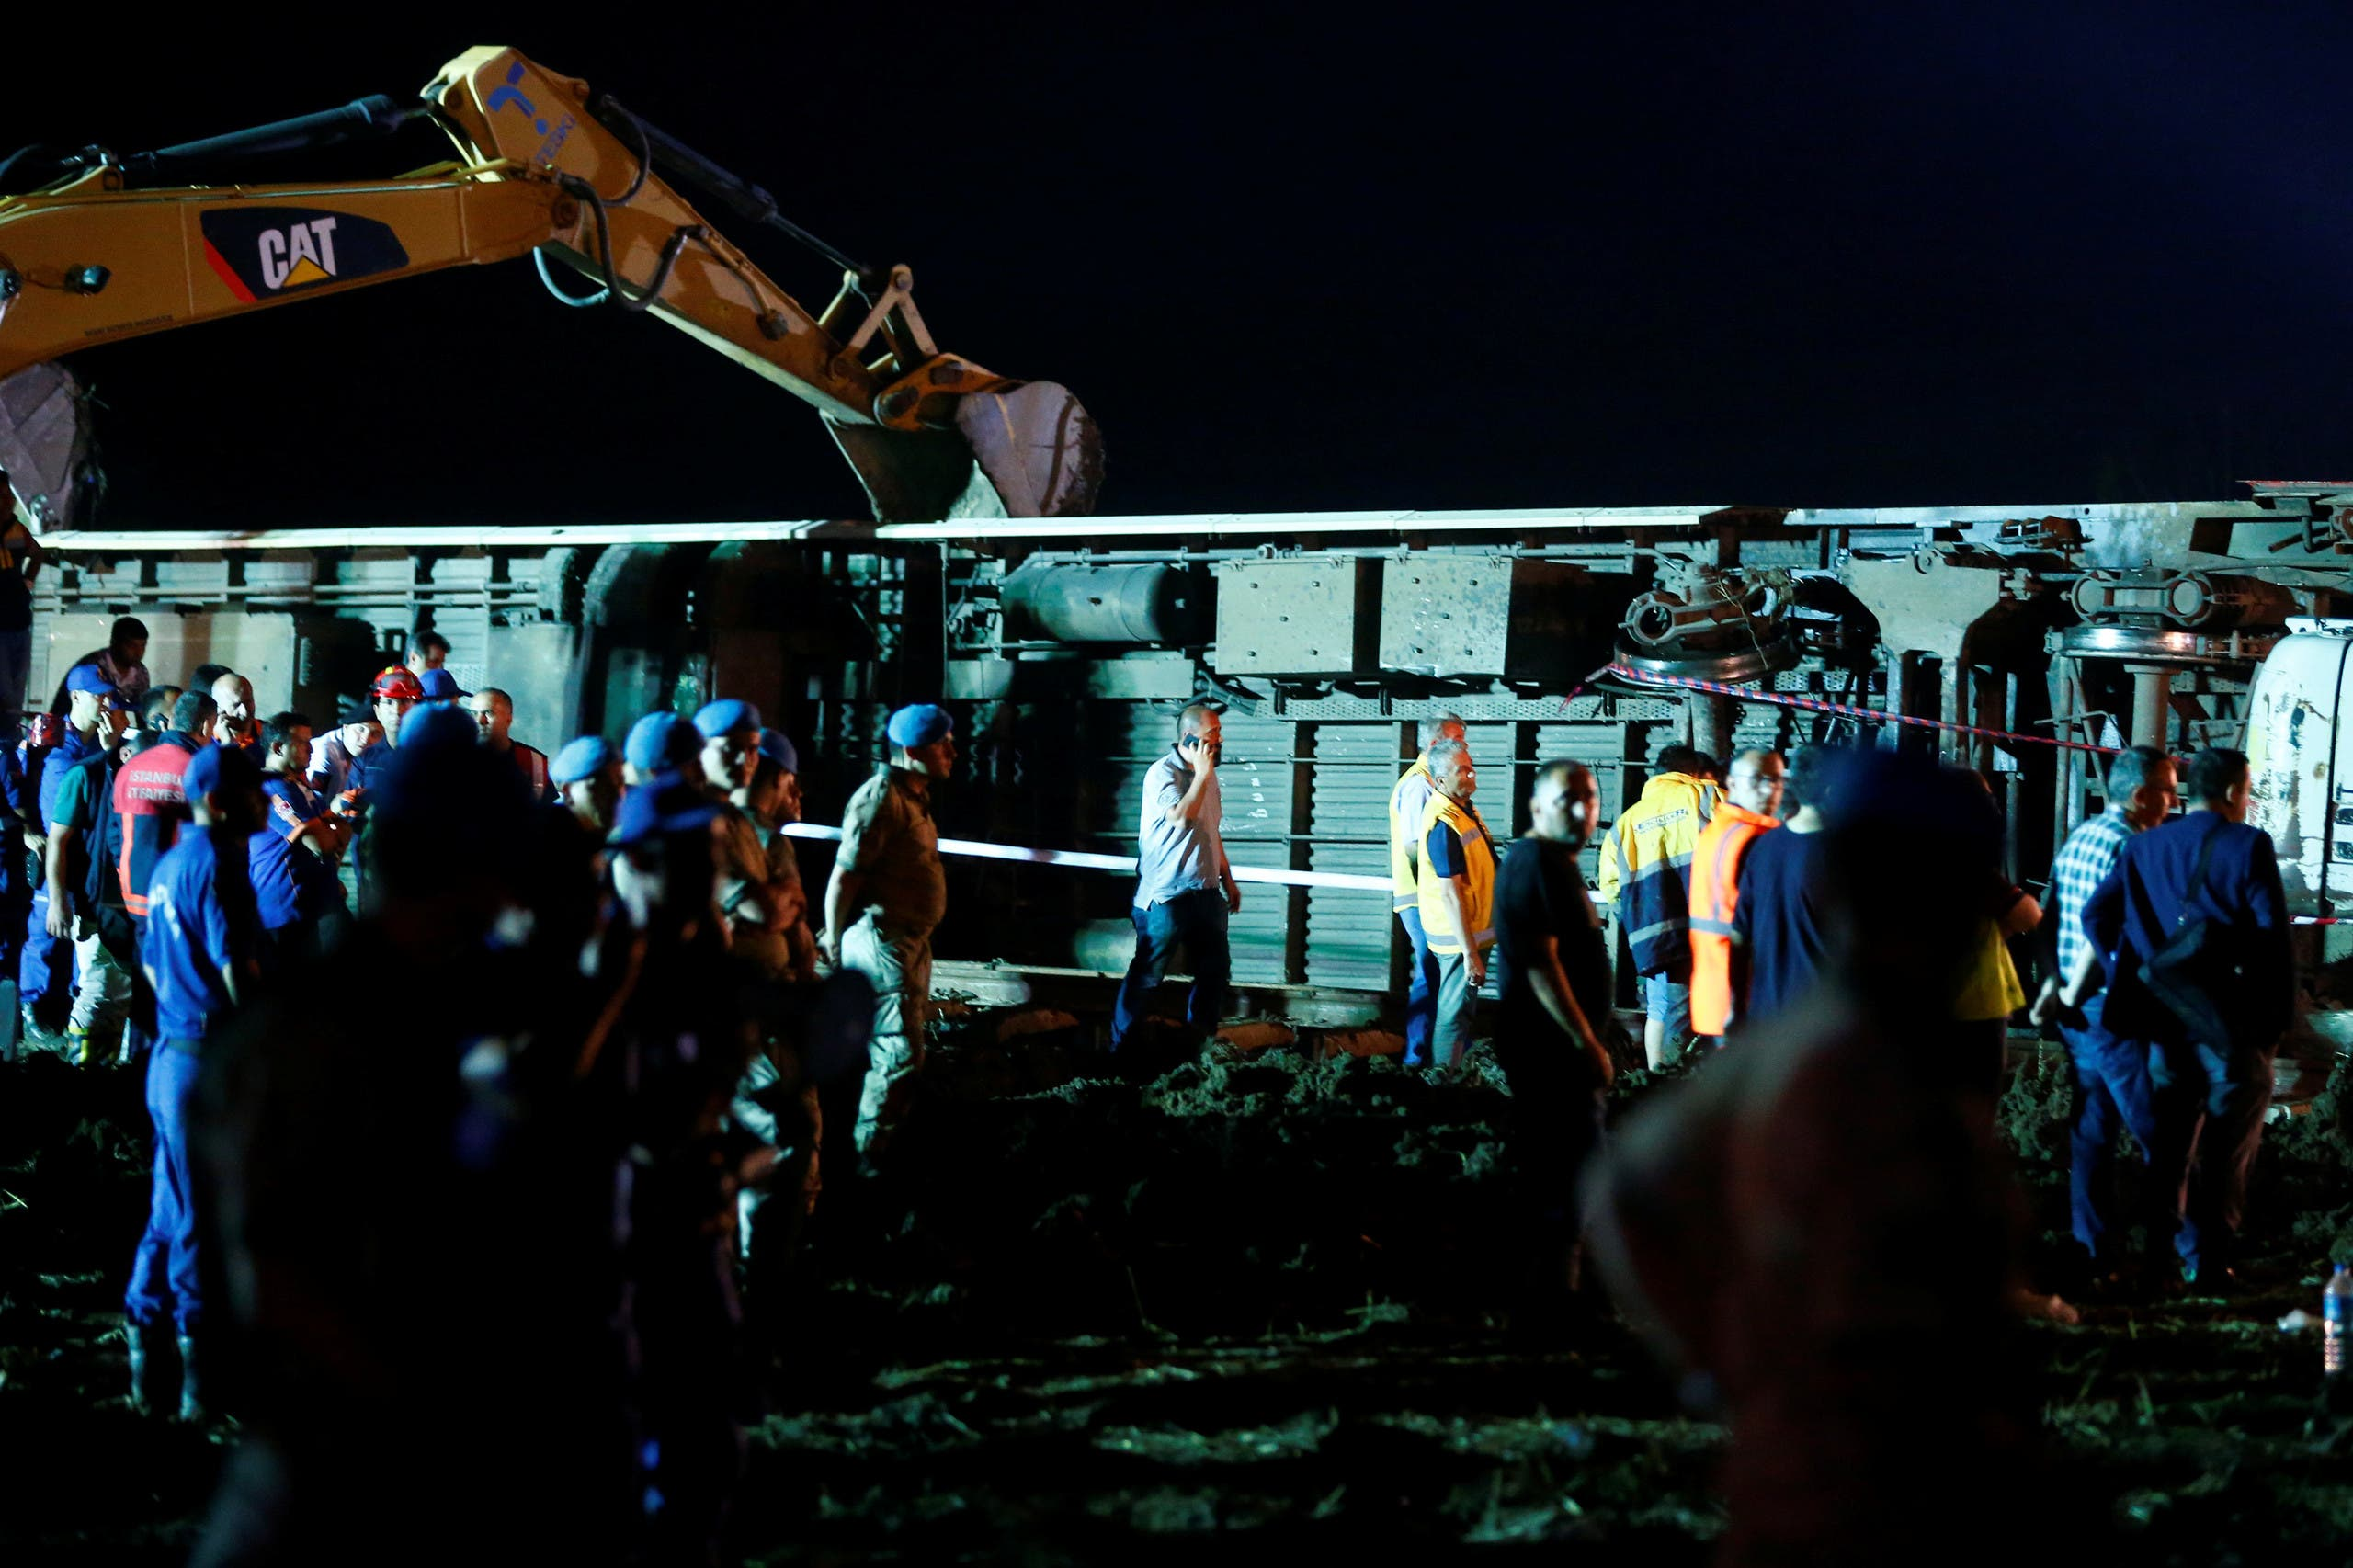 Rescue workers and paramedics work at the site of a train derailment near Corlu in Tekirdag province, Turkey, July 9, 2018. REUTERS